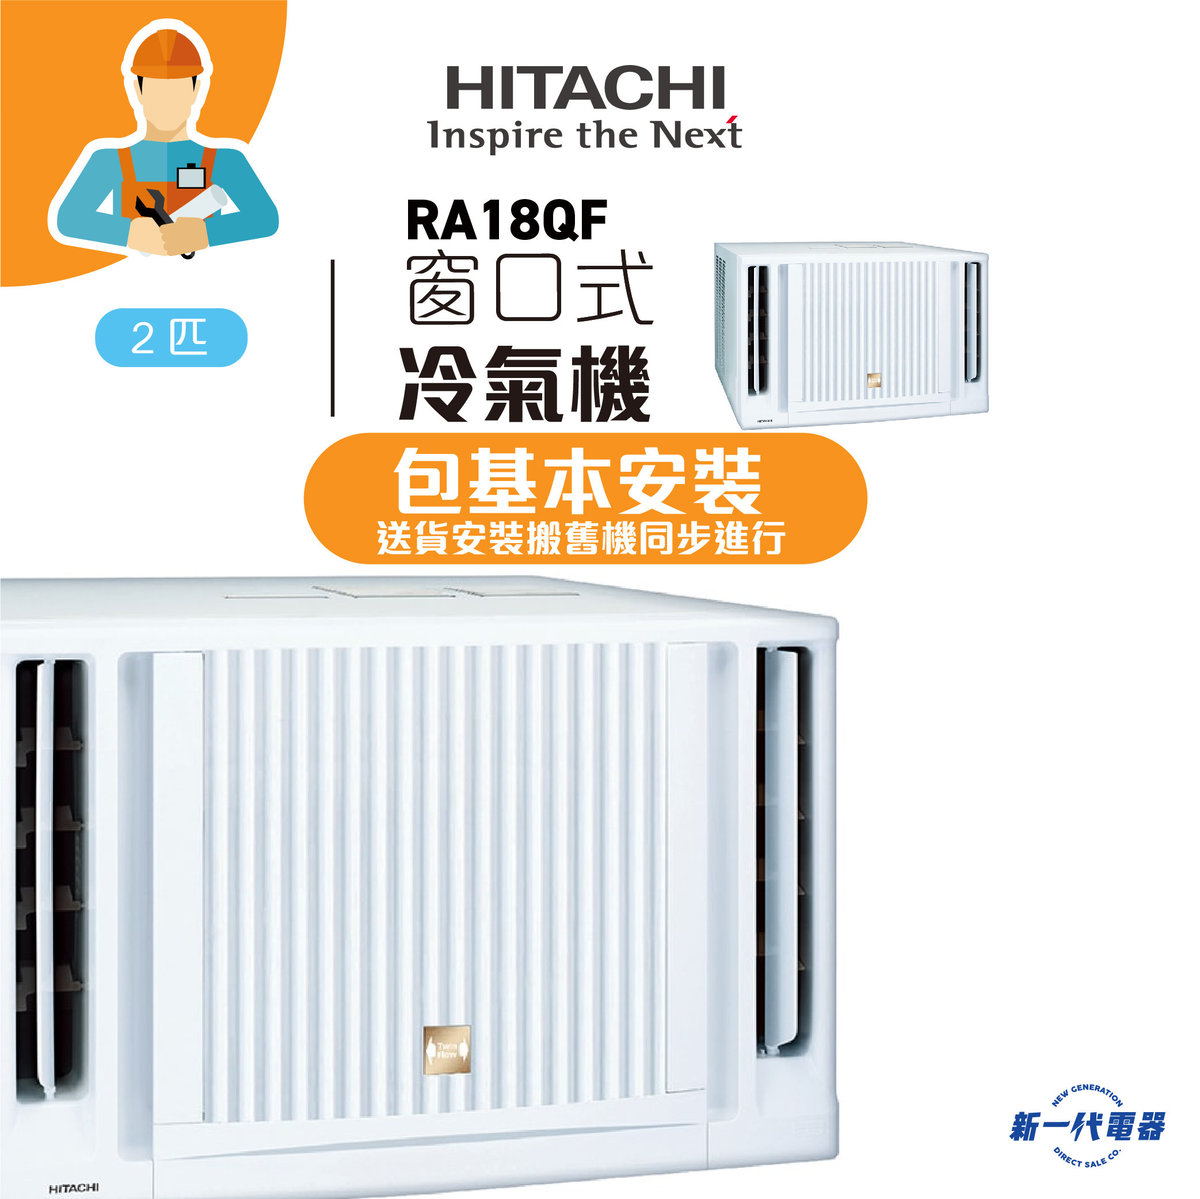 RA18QF    (Basic installation) Window Type Air Conditioner